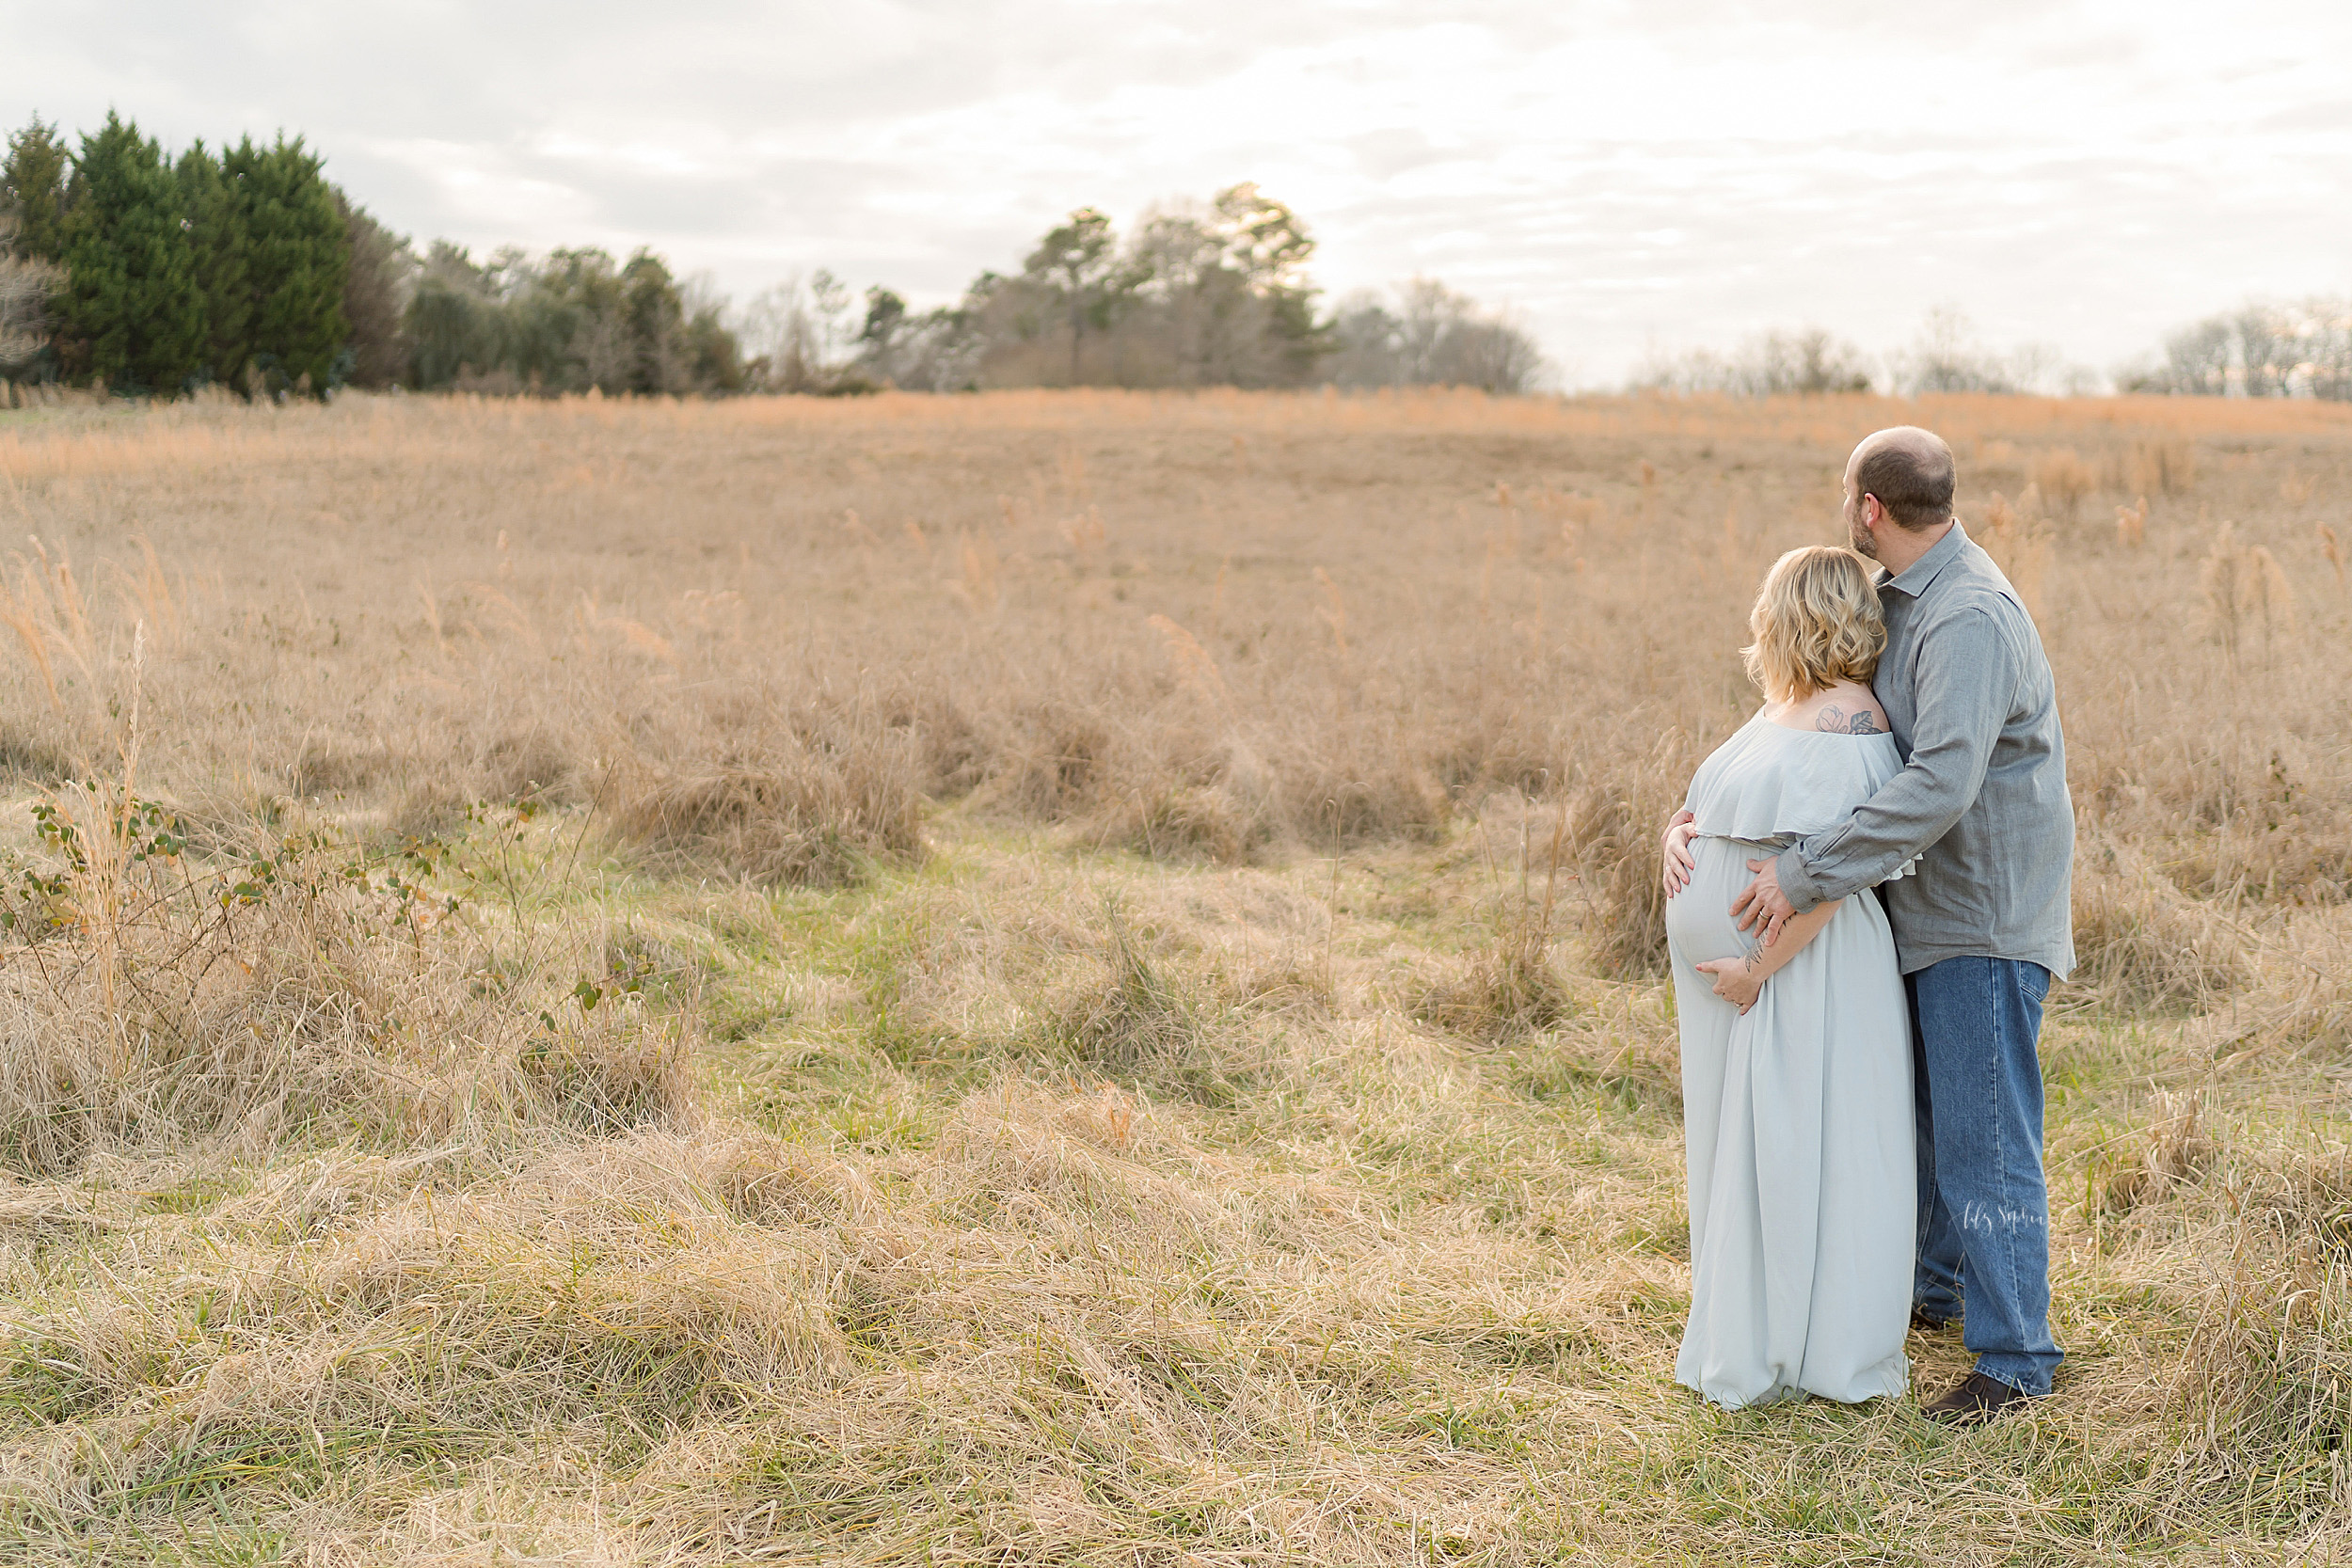 atlanta-sandy-springs-buckhead-virginia-highlands-west-end-decatur-lily-sophia-photography-sunset-field-maternity-couples-session-expecting-baby-girl_0944.jpg